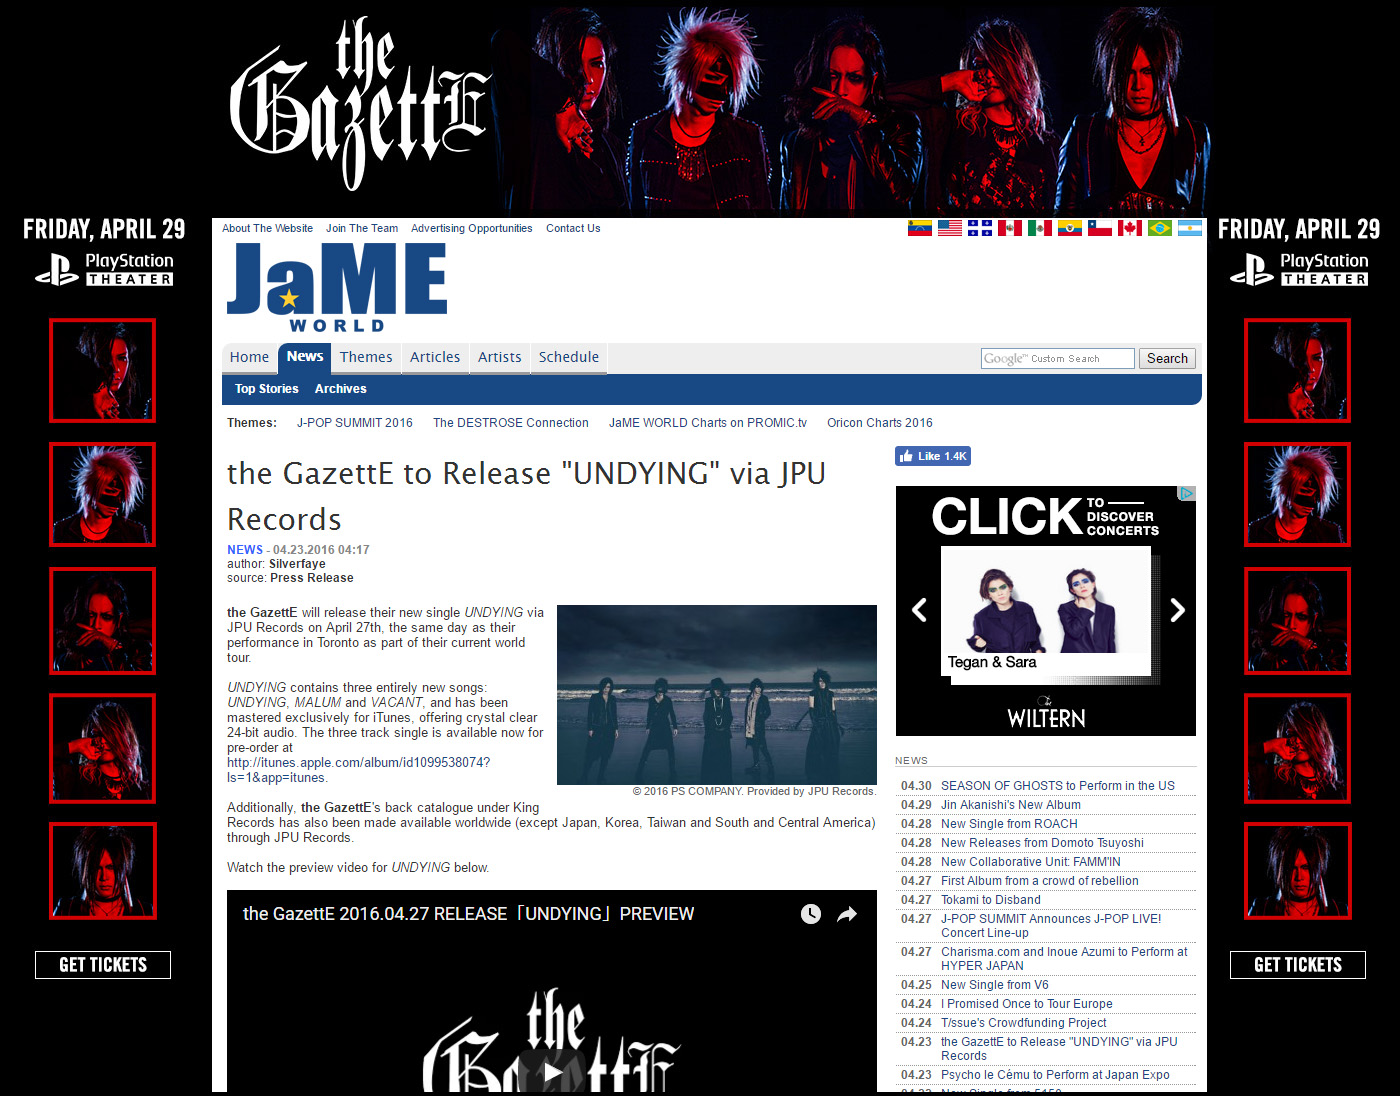 RMMS-The-Gazette-NYC-Campaign-1-JaME-skin